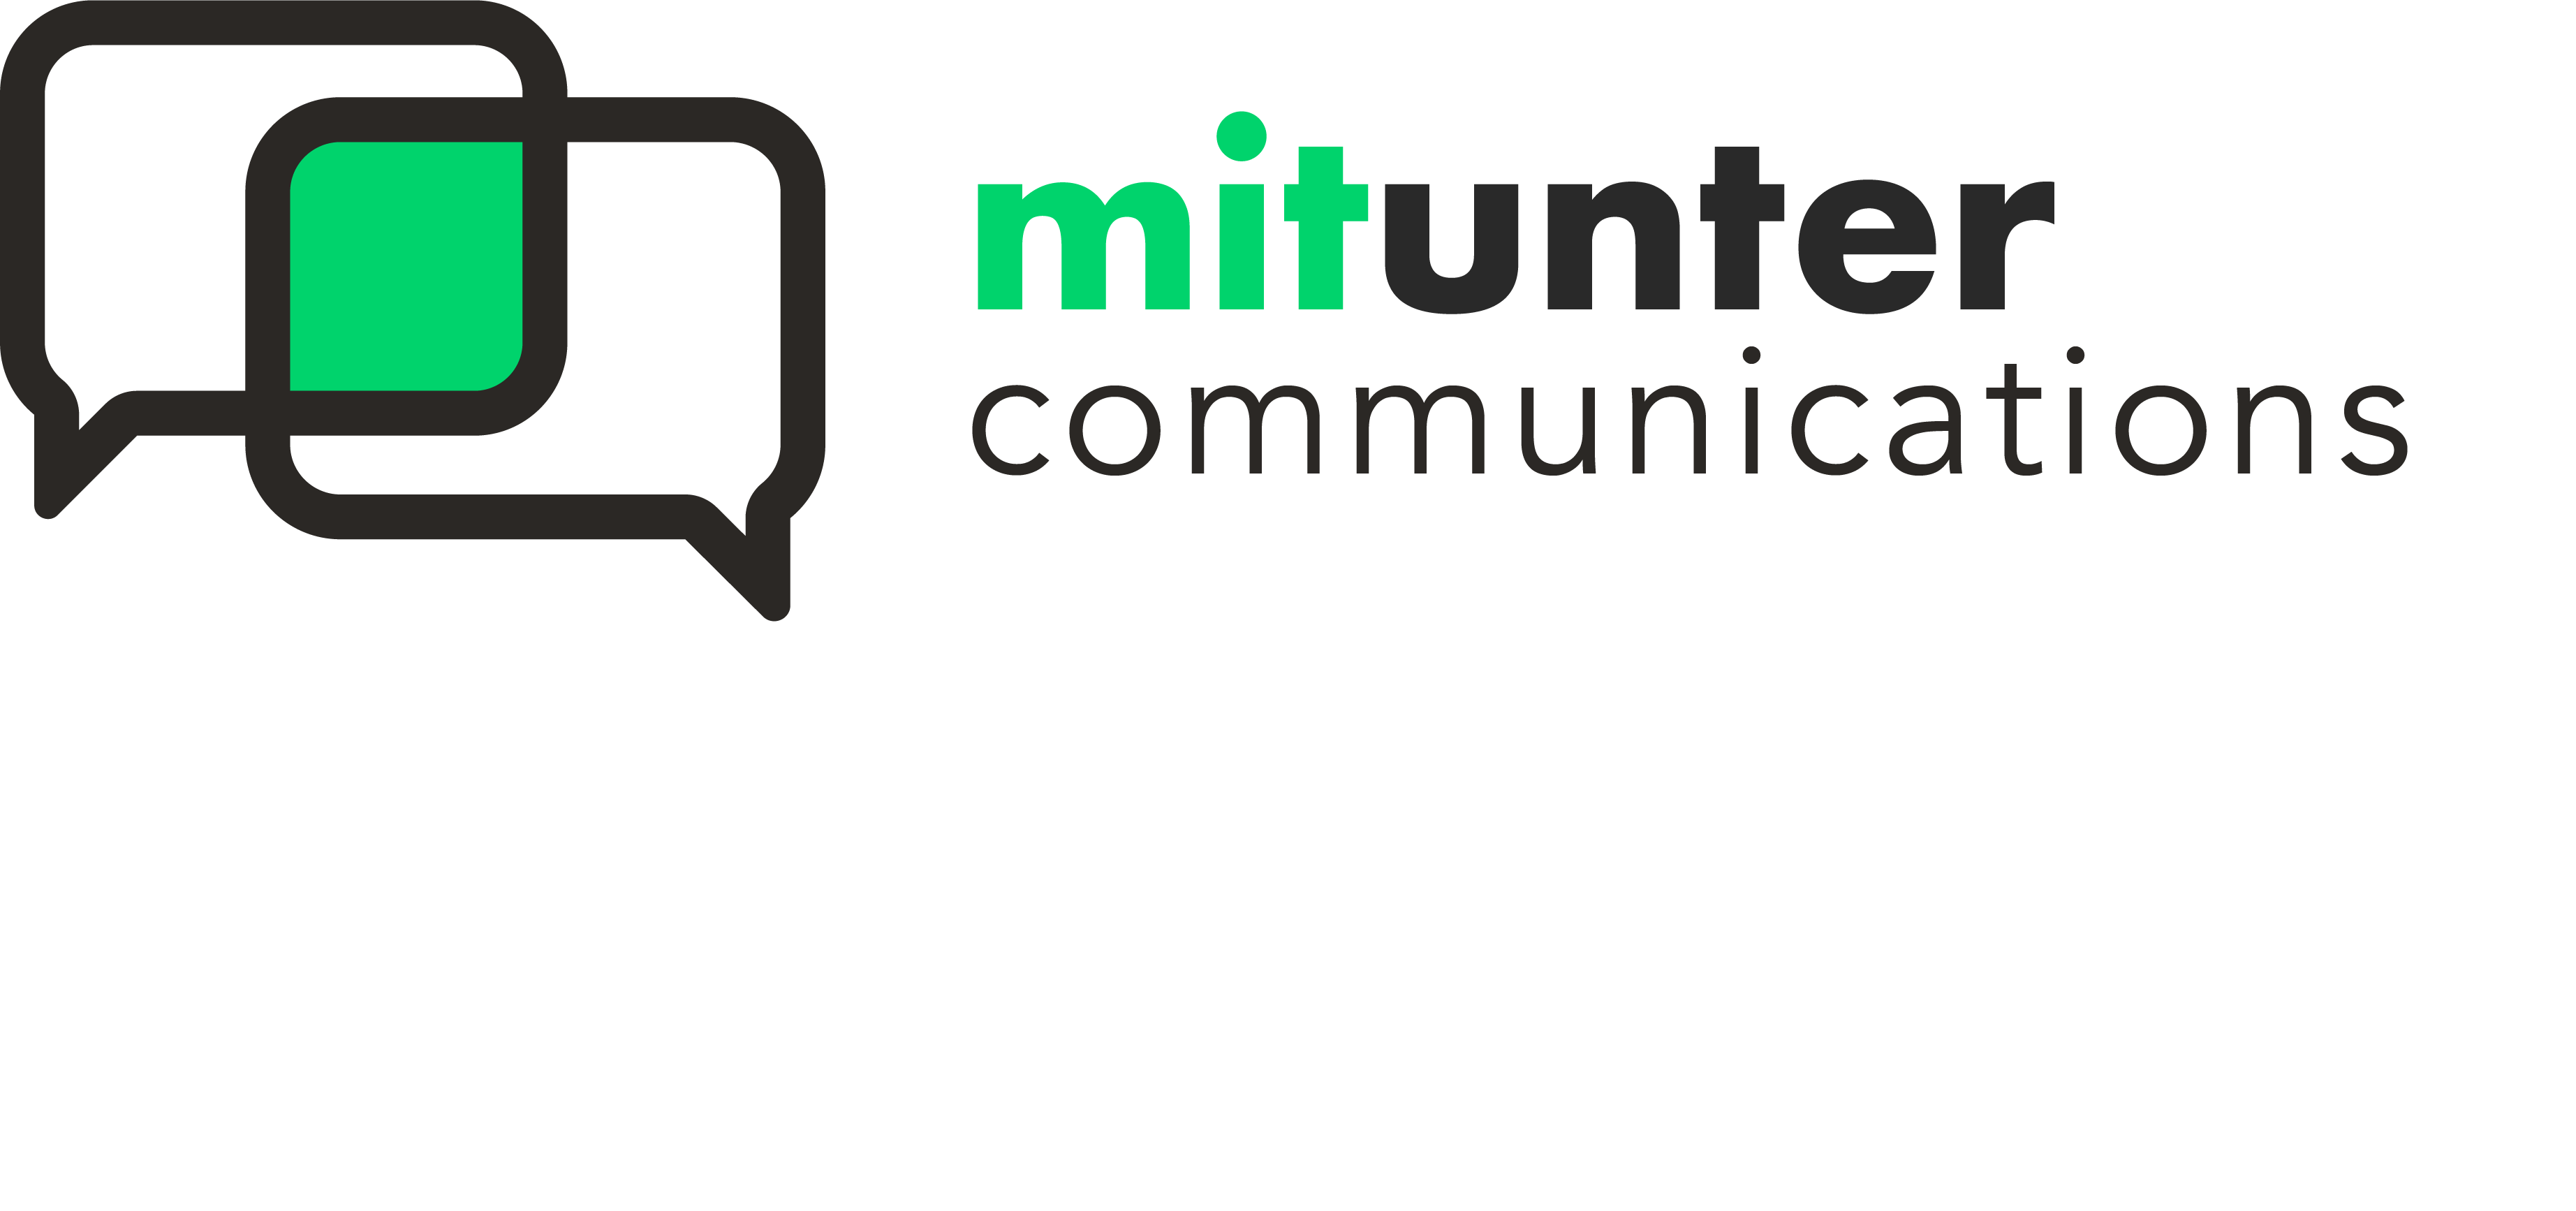 mitunter communications